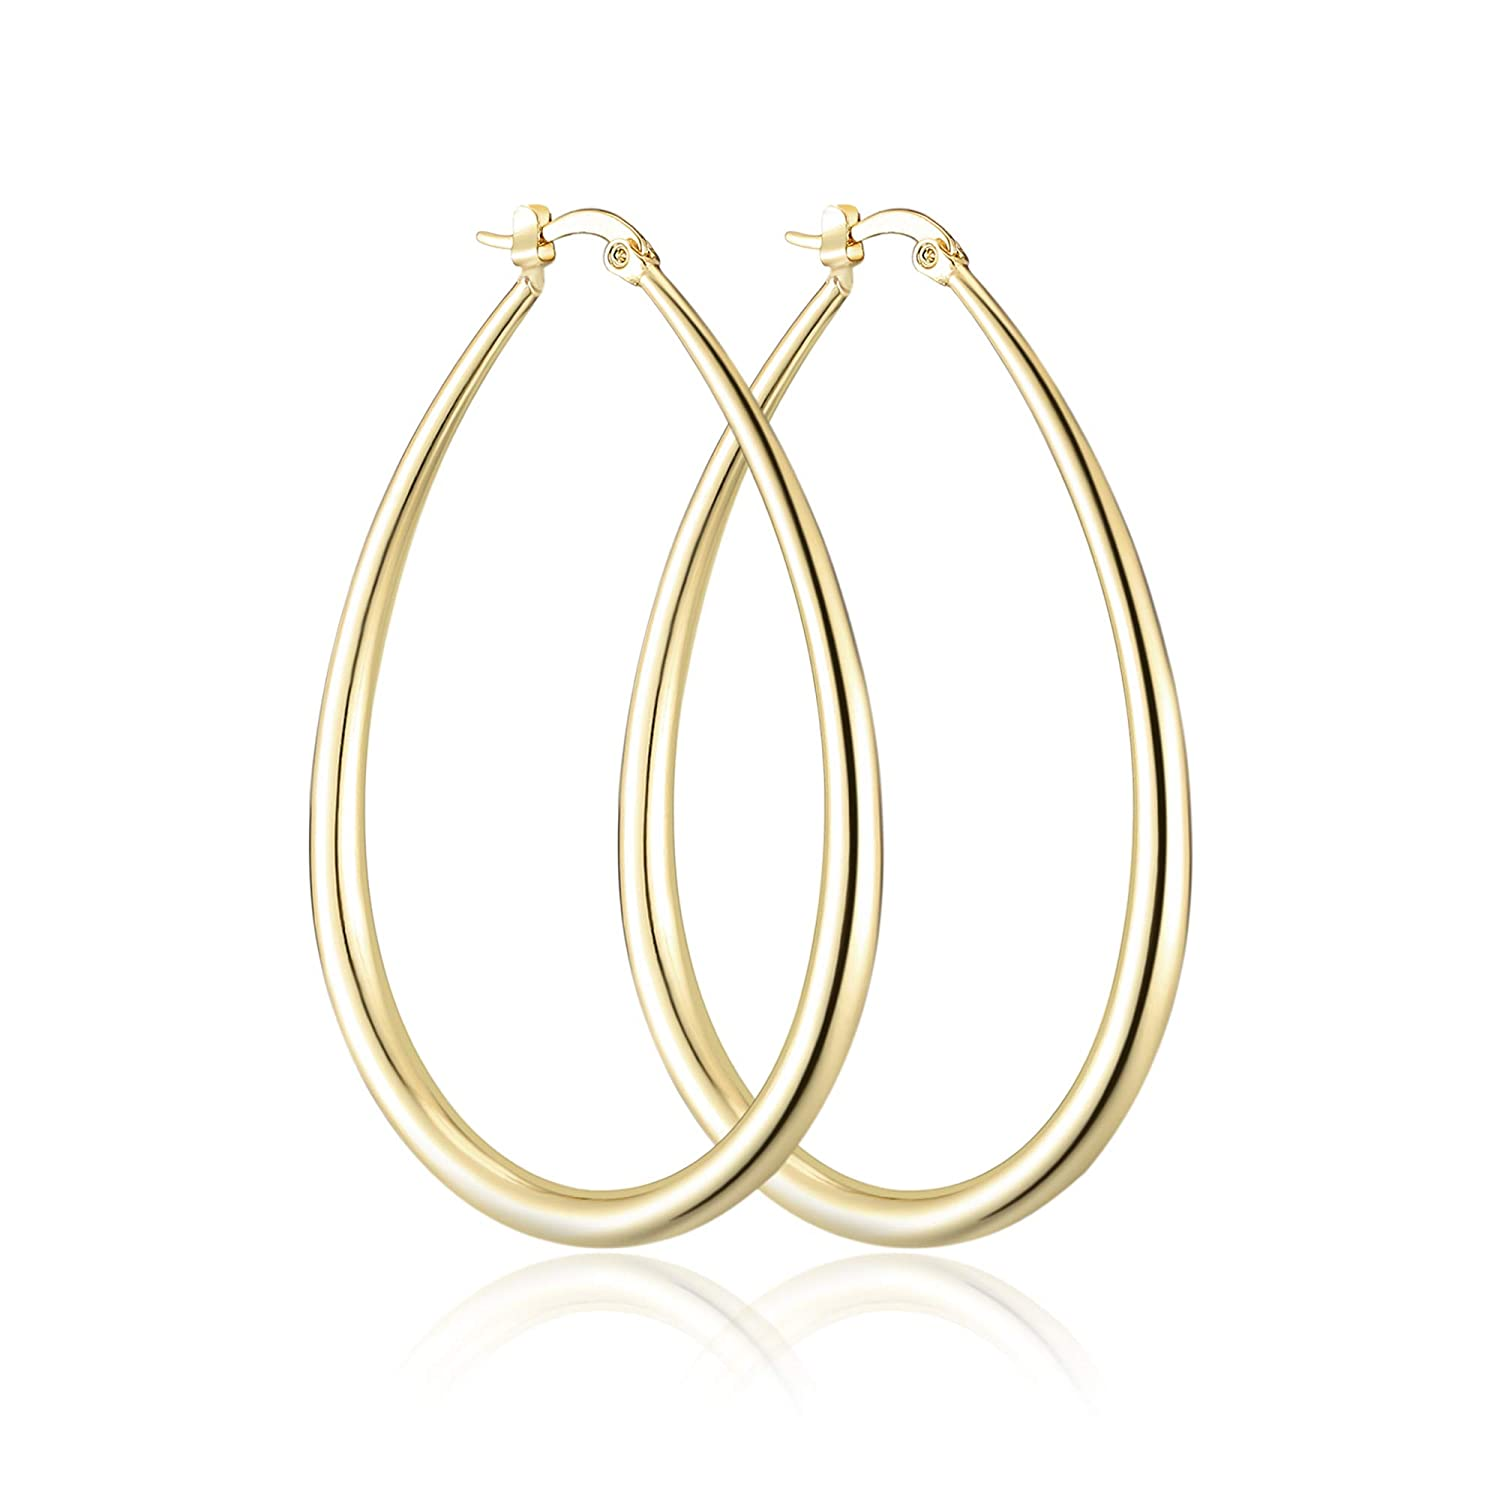 dnswez 14K Gold Plate Big Teardrop Earrings Simple Circle Hoop Statement Earring for Women Girl Fashion Jewelry